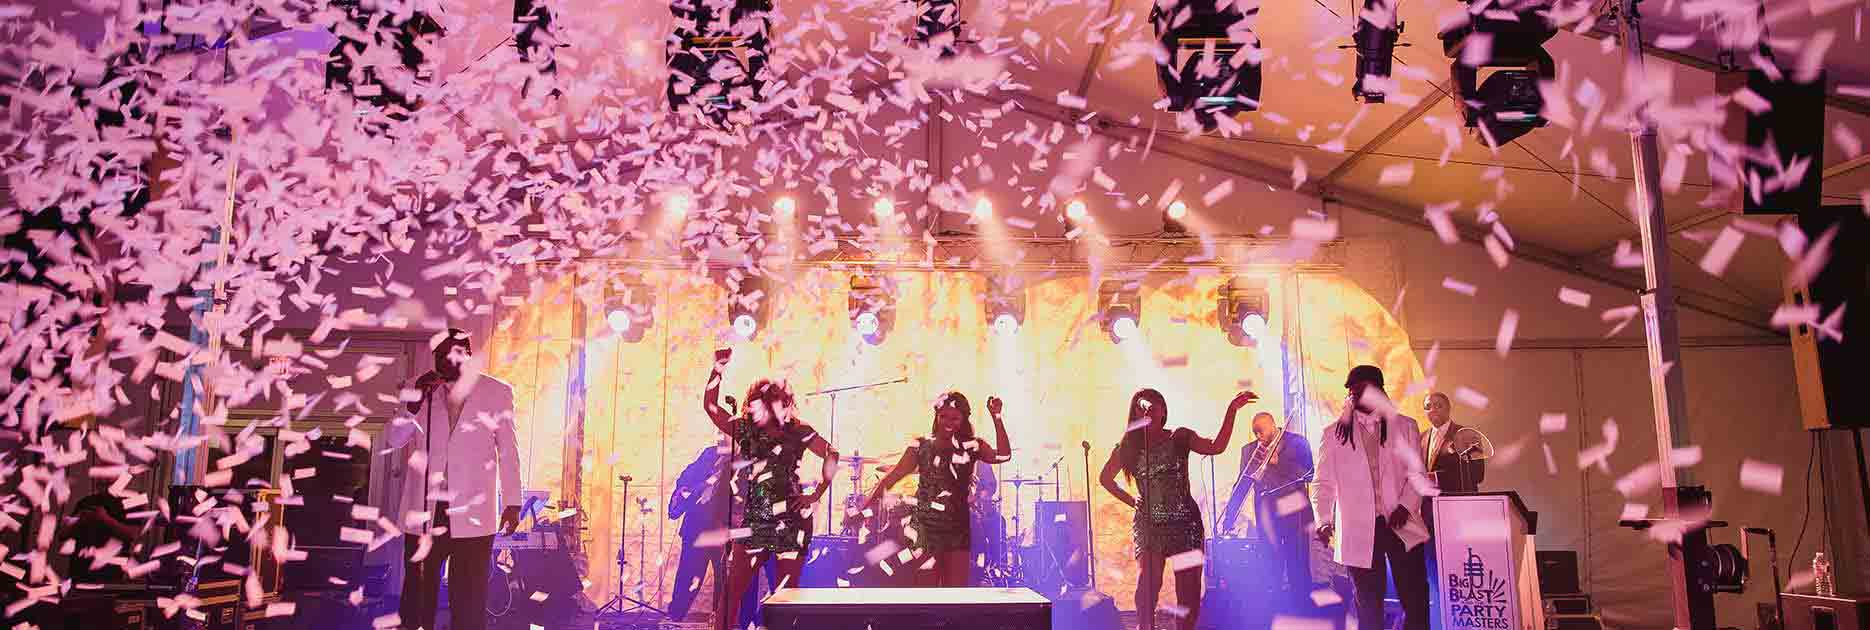 Live band performing on stage with falling confetti.